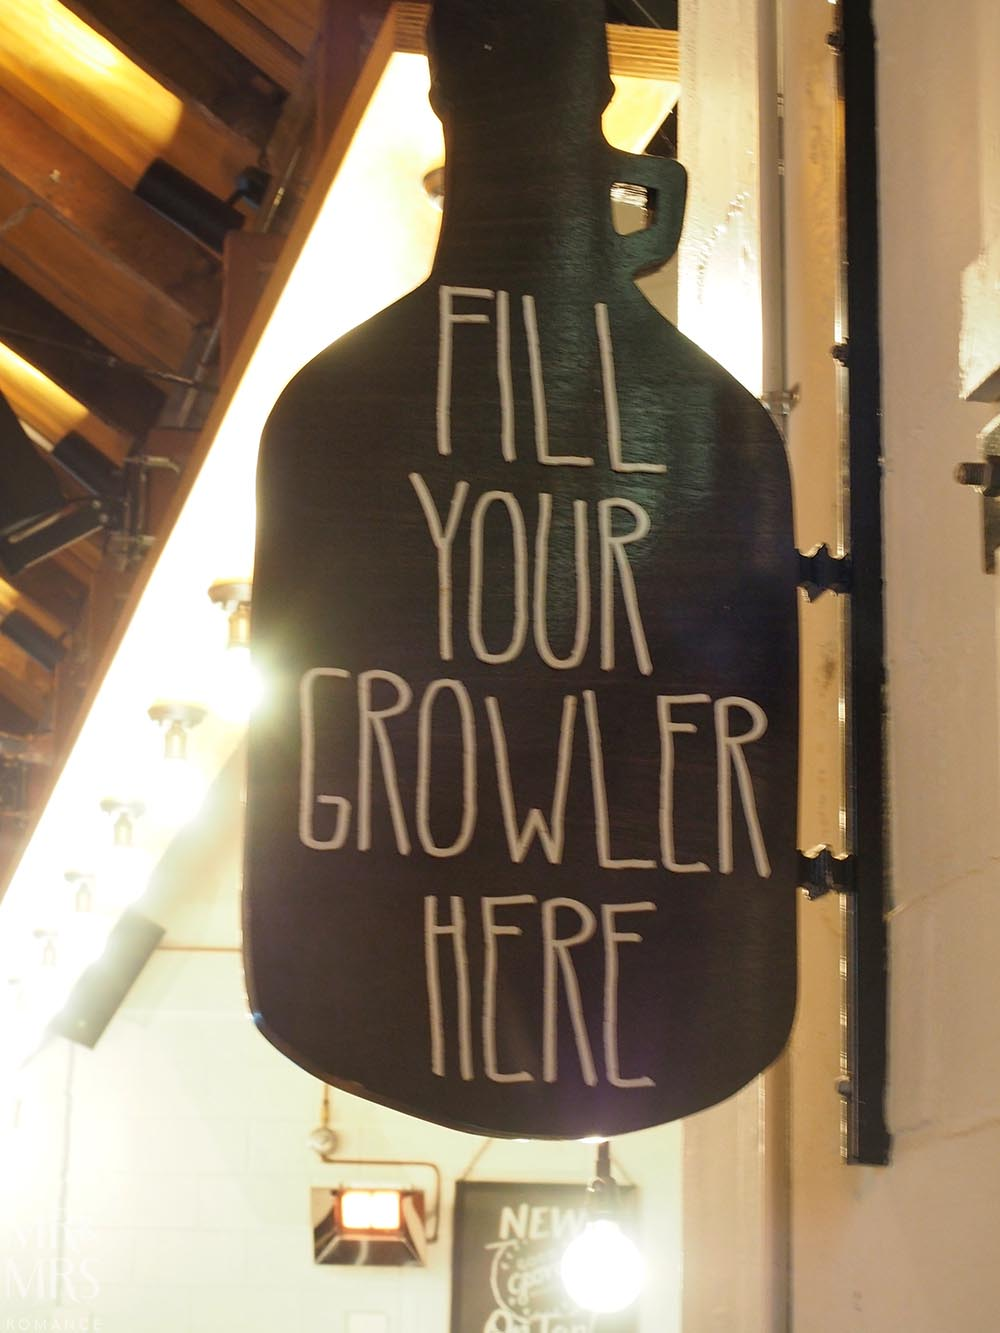 Good George Brewing, Hamilton, New Zealand - fill your growler